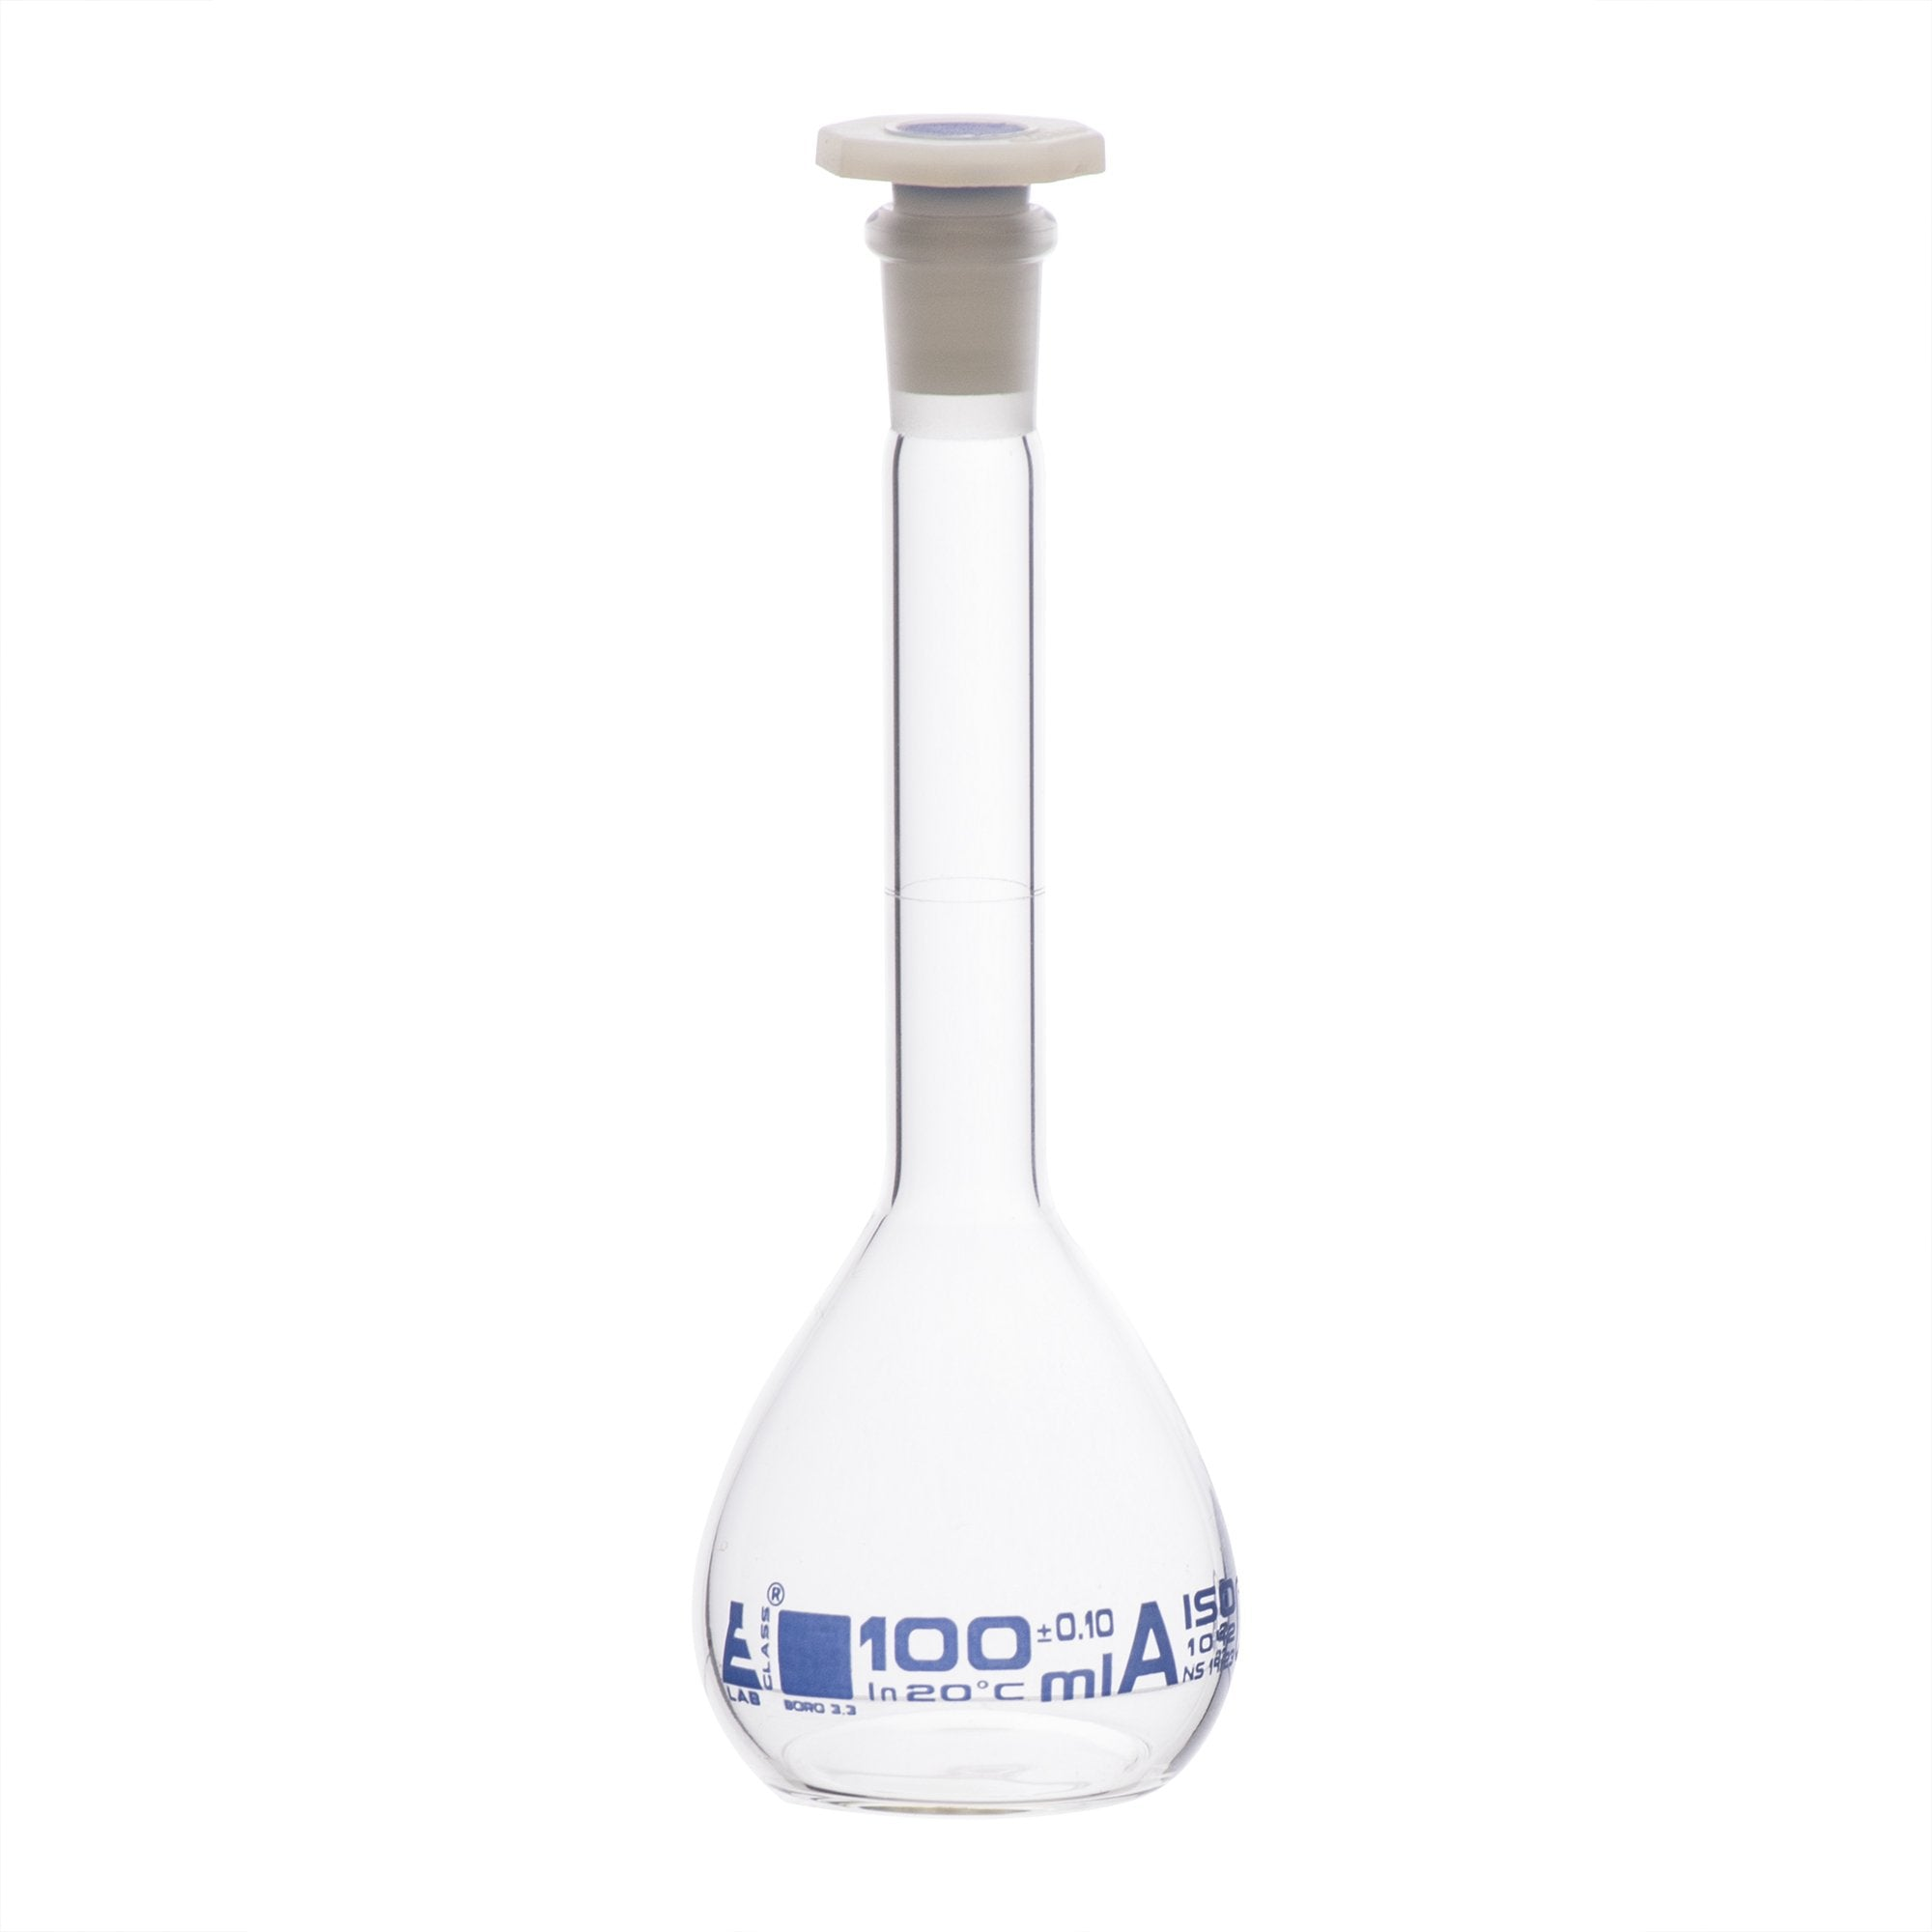 Borosilicate Glass Volumetric Flask with Polypropylene Stopper, 100 ml, Class A with Individual Work Certificate, Pack of 2,  Autoclavable